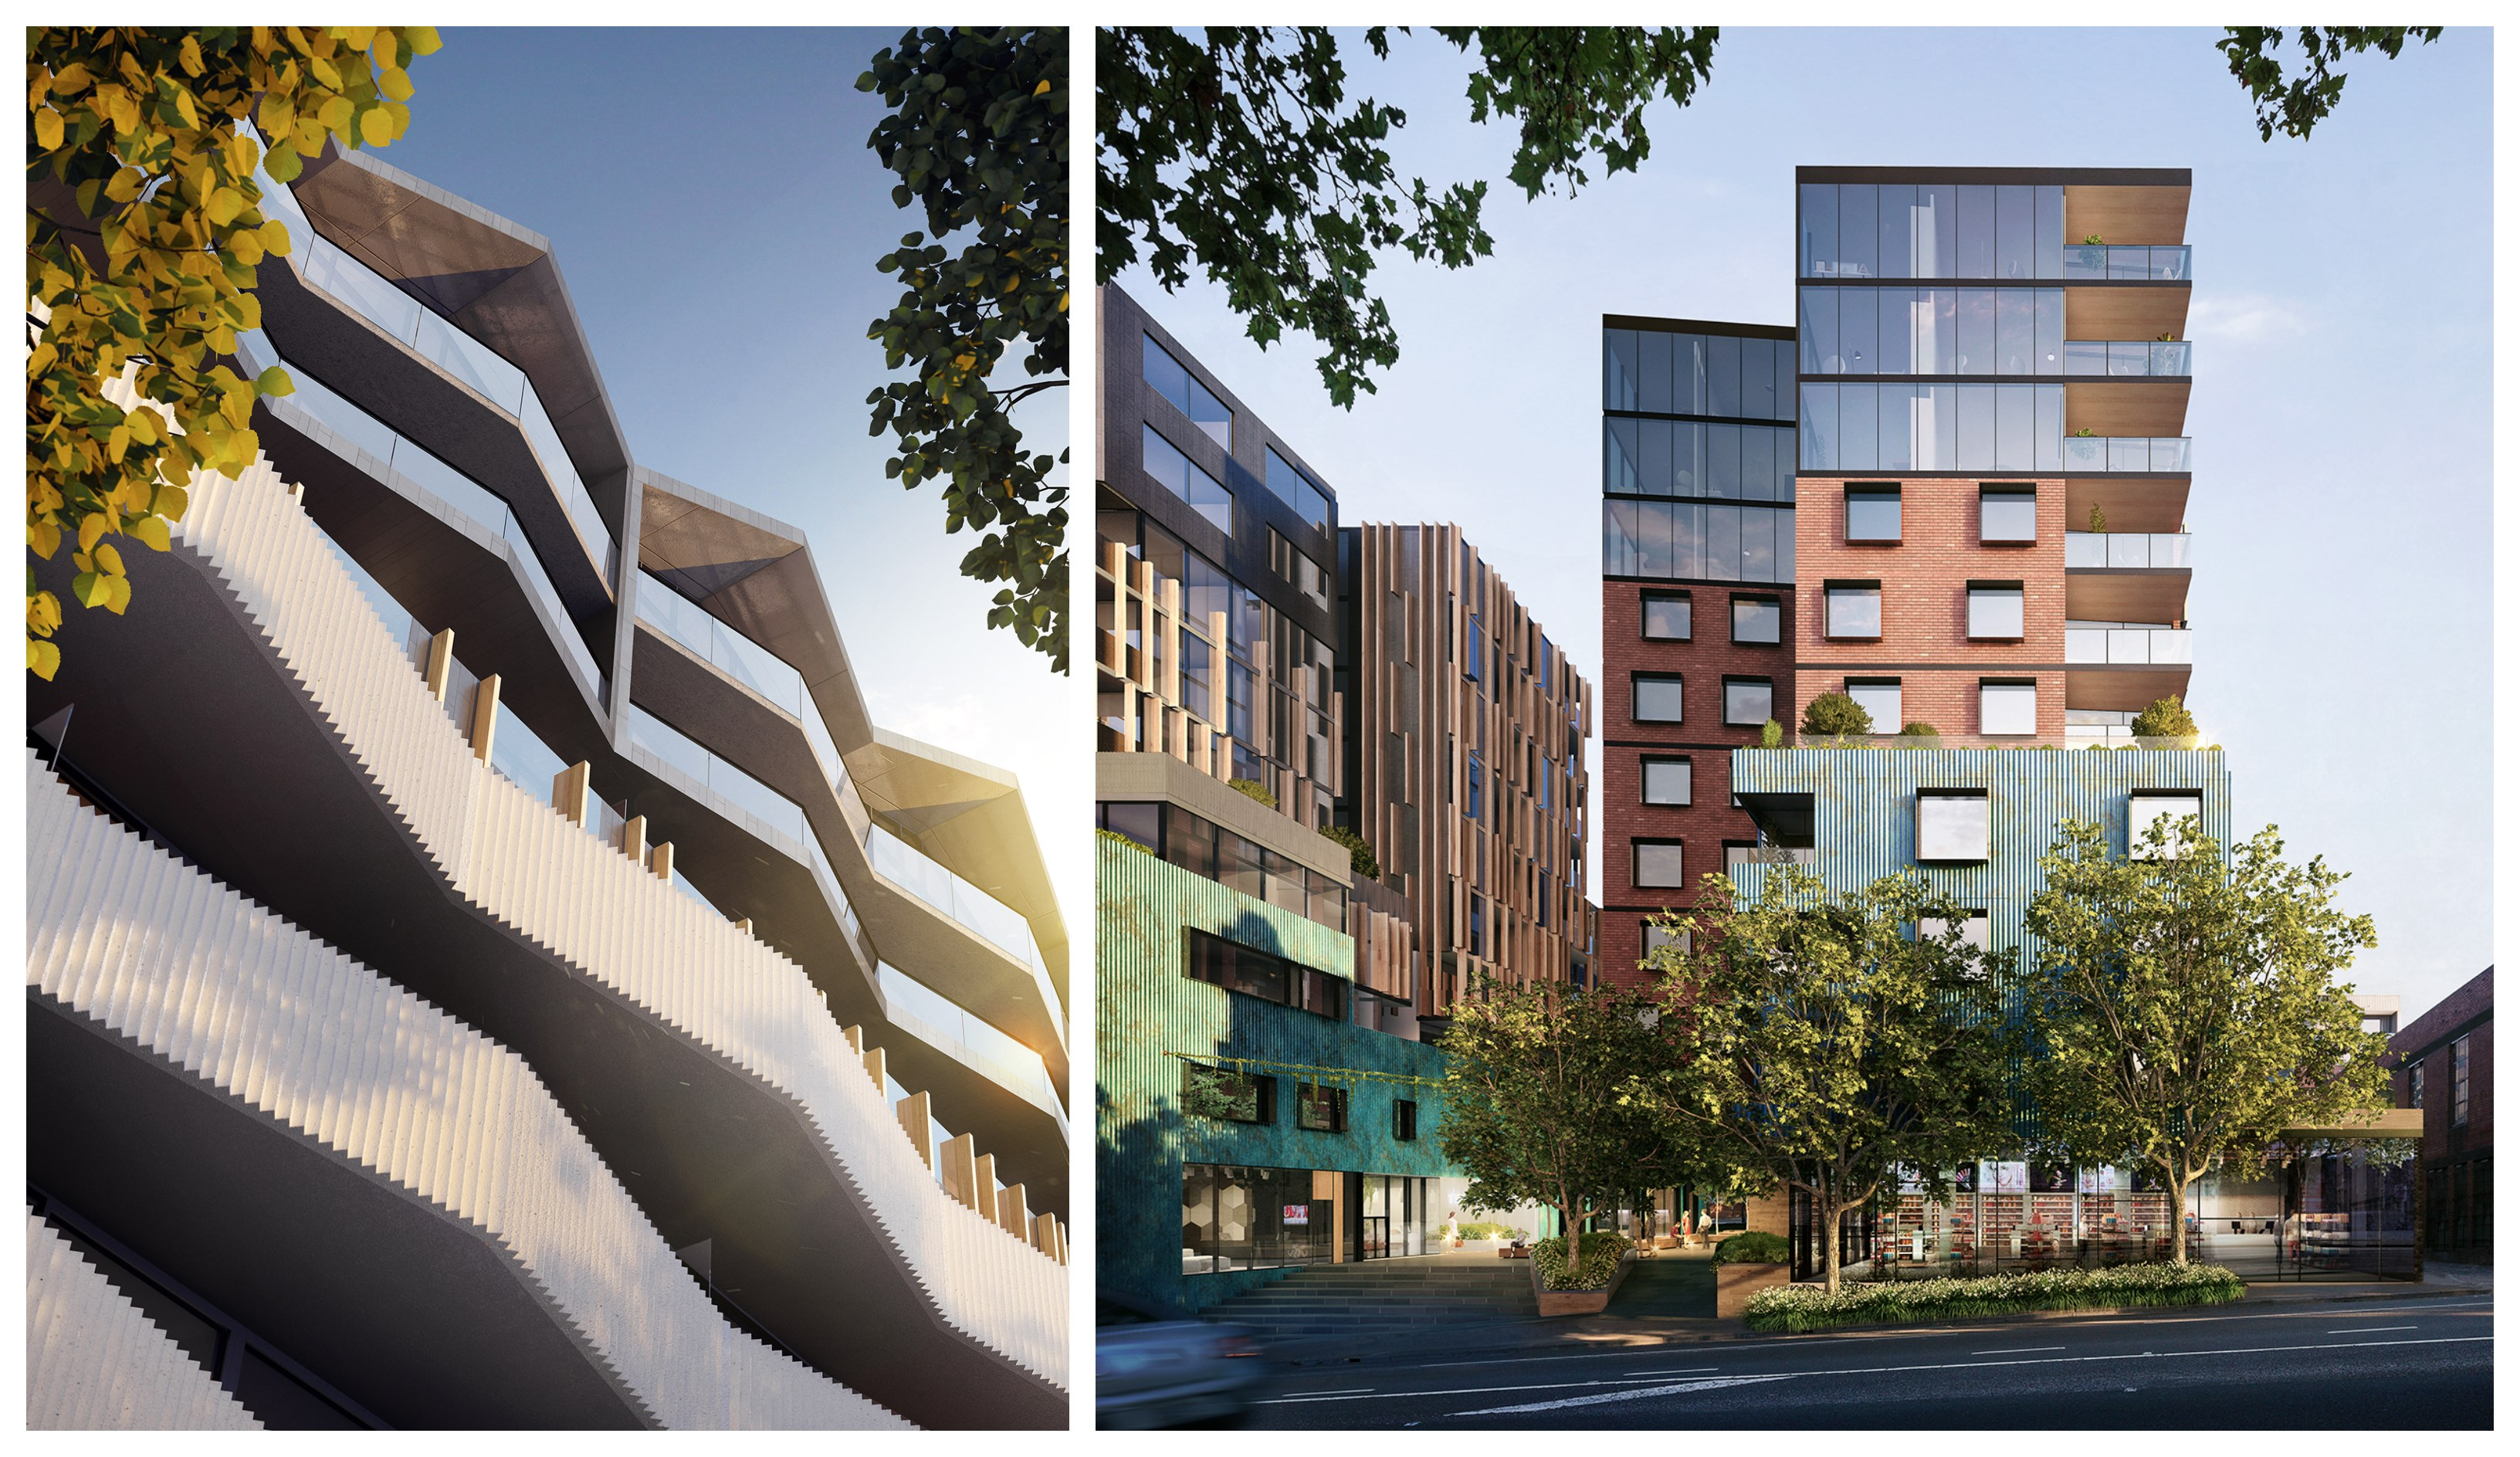 Renders of 'The Mailehouse' and 'The Spencer' in West End.